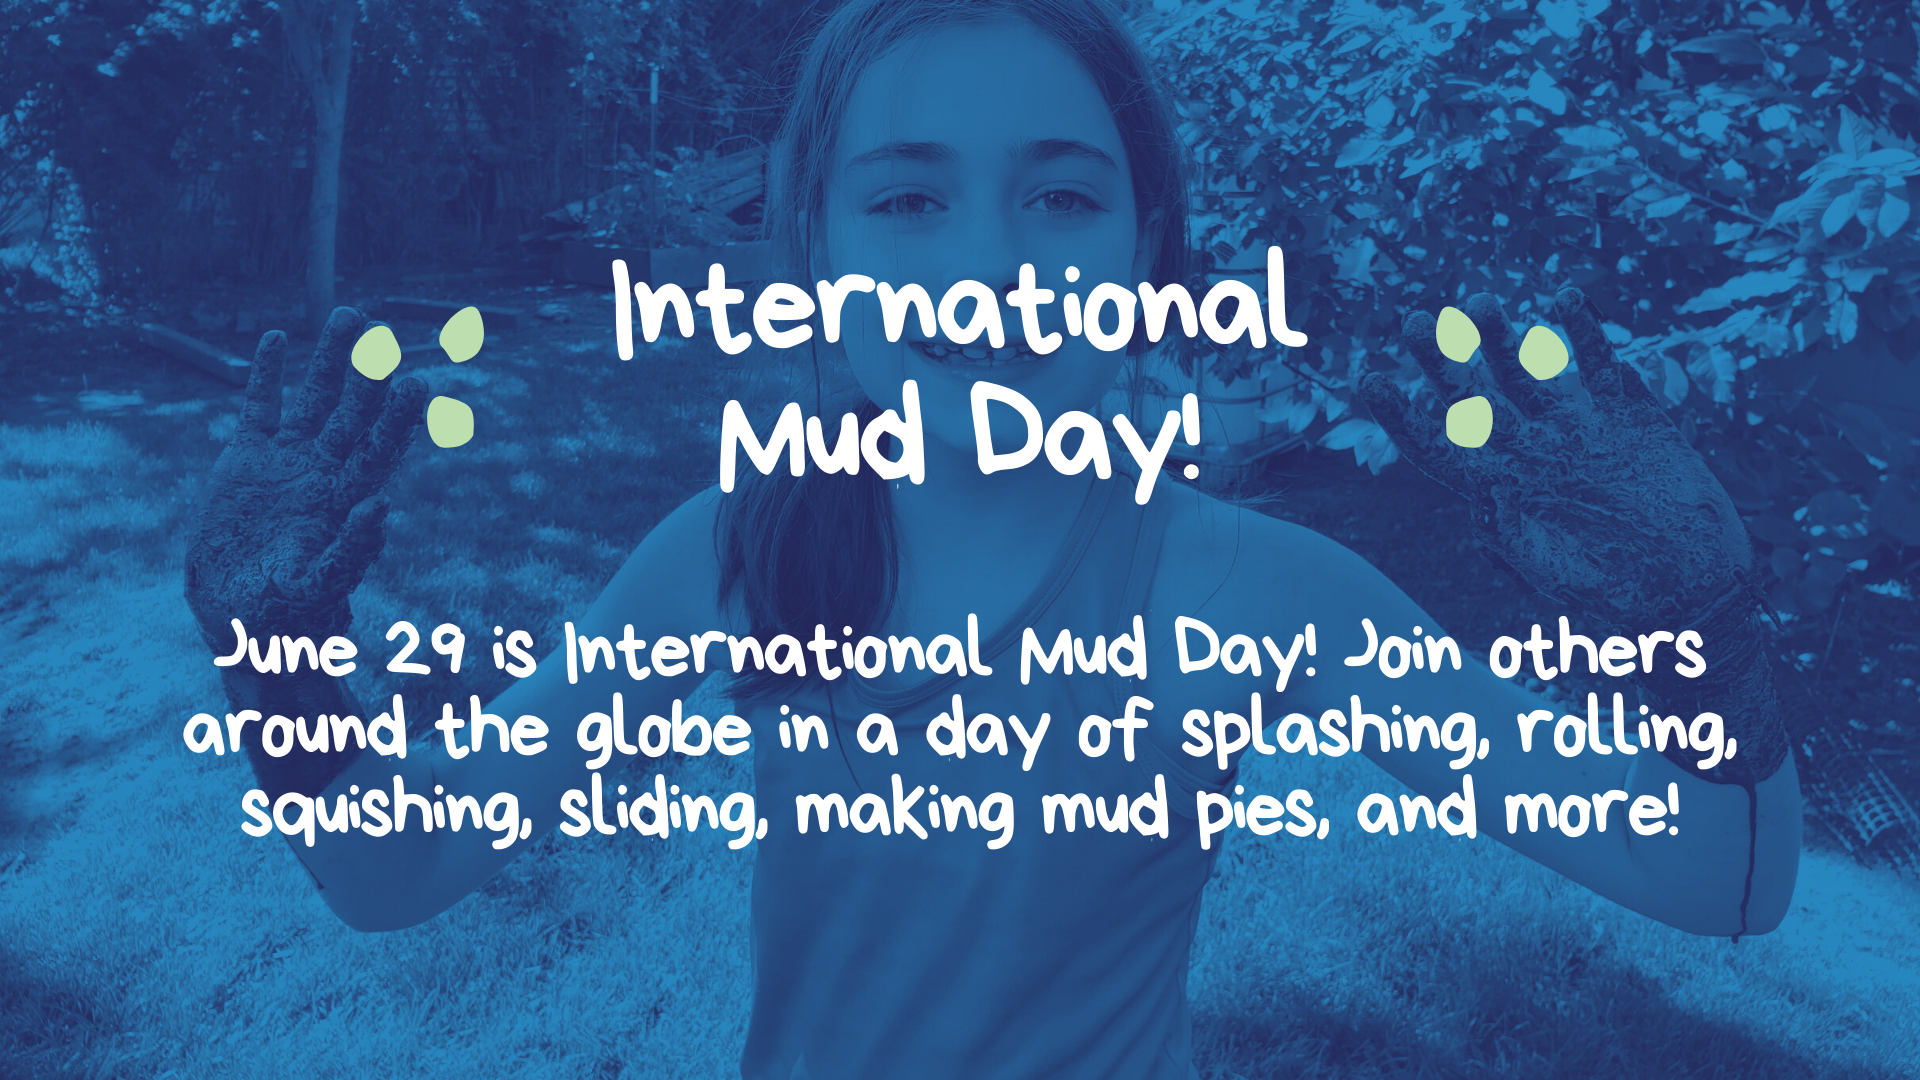 Celebrate International Mud Day